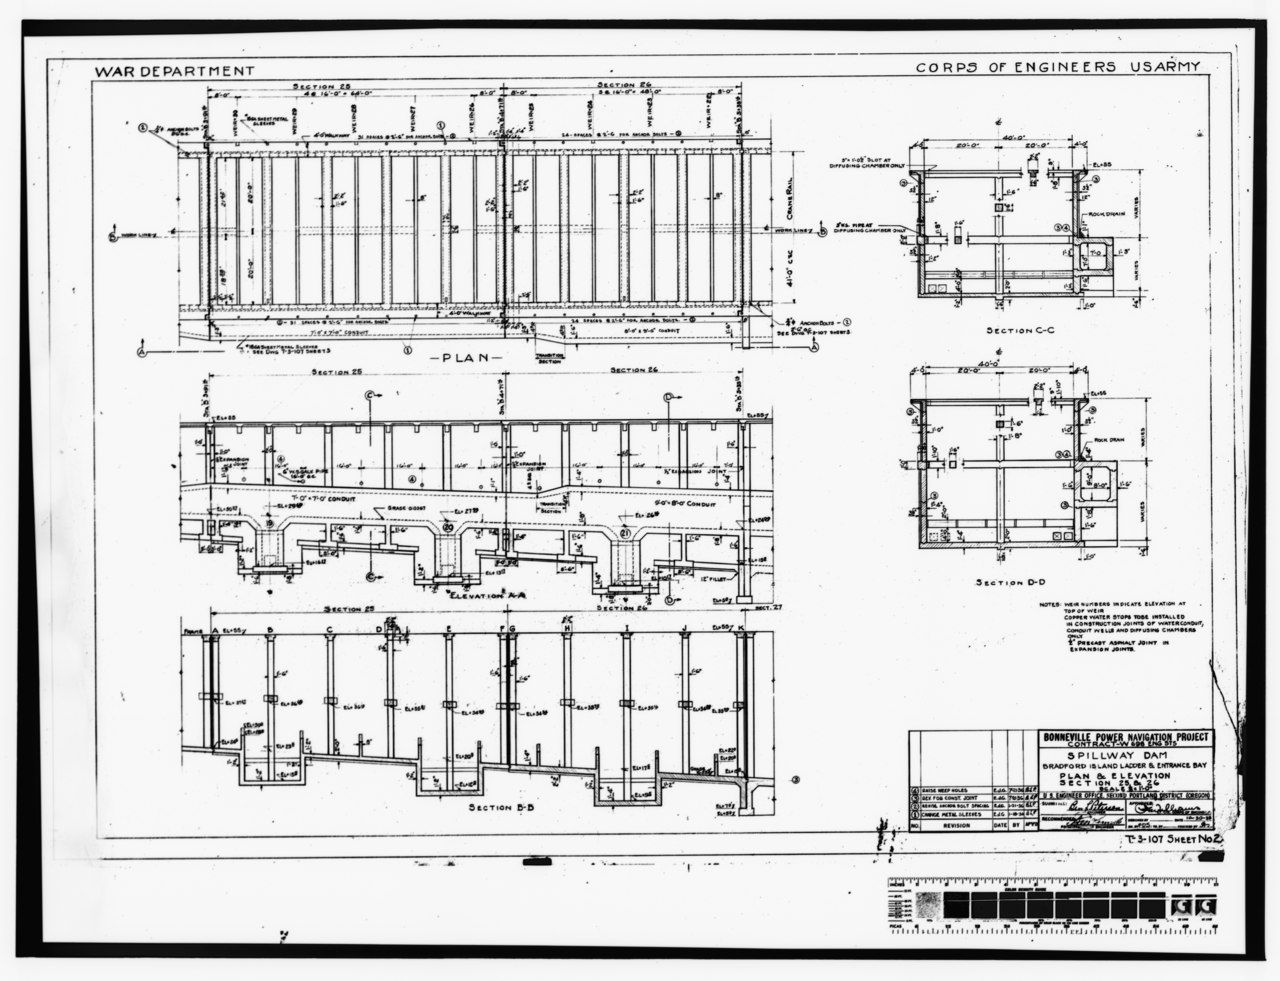 File Photocopy Of Original Construction Drawing 30